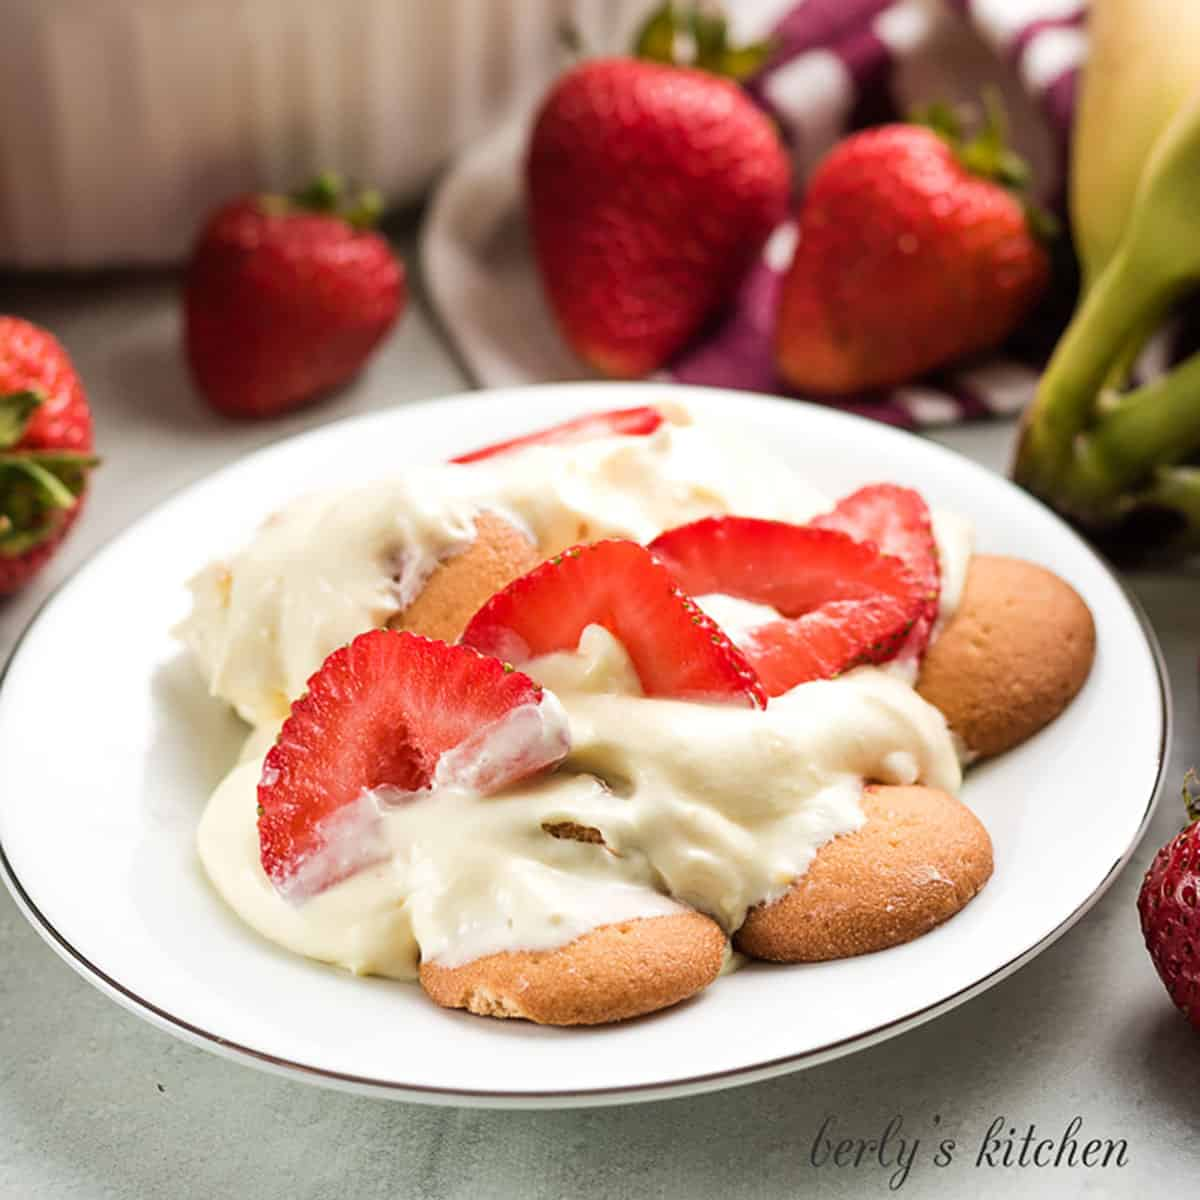 The strawberry banana pudding on a small plate.